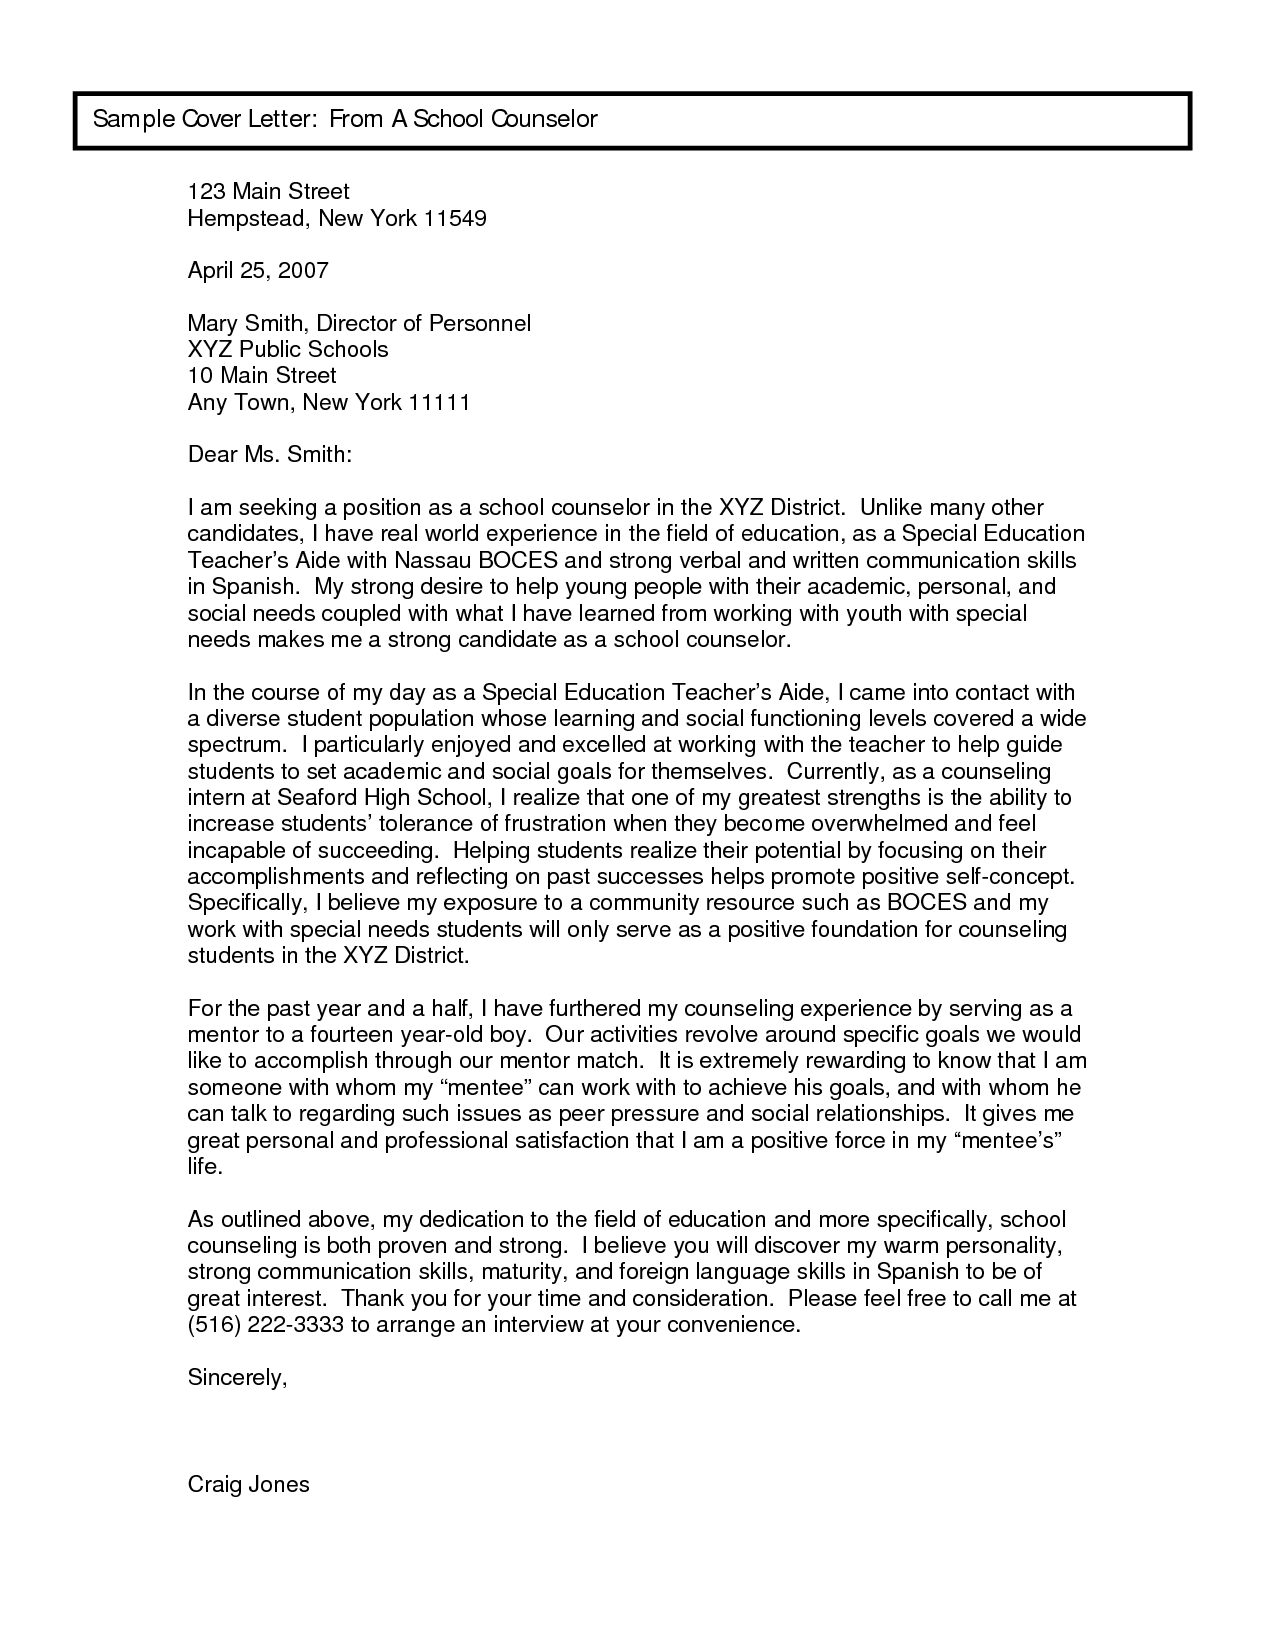 Professional School Counselor Resume Sample Cover Letter